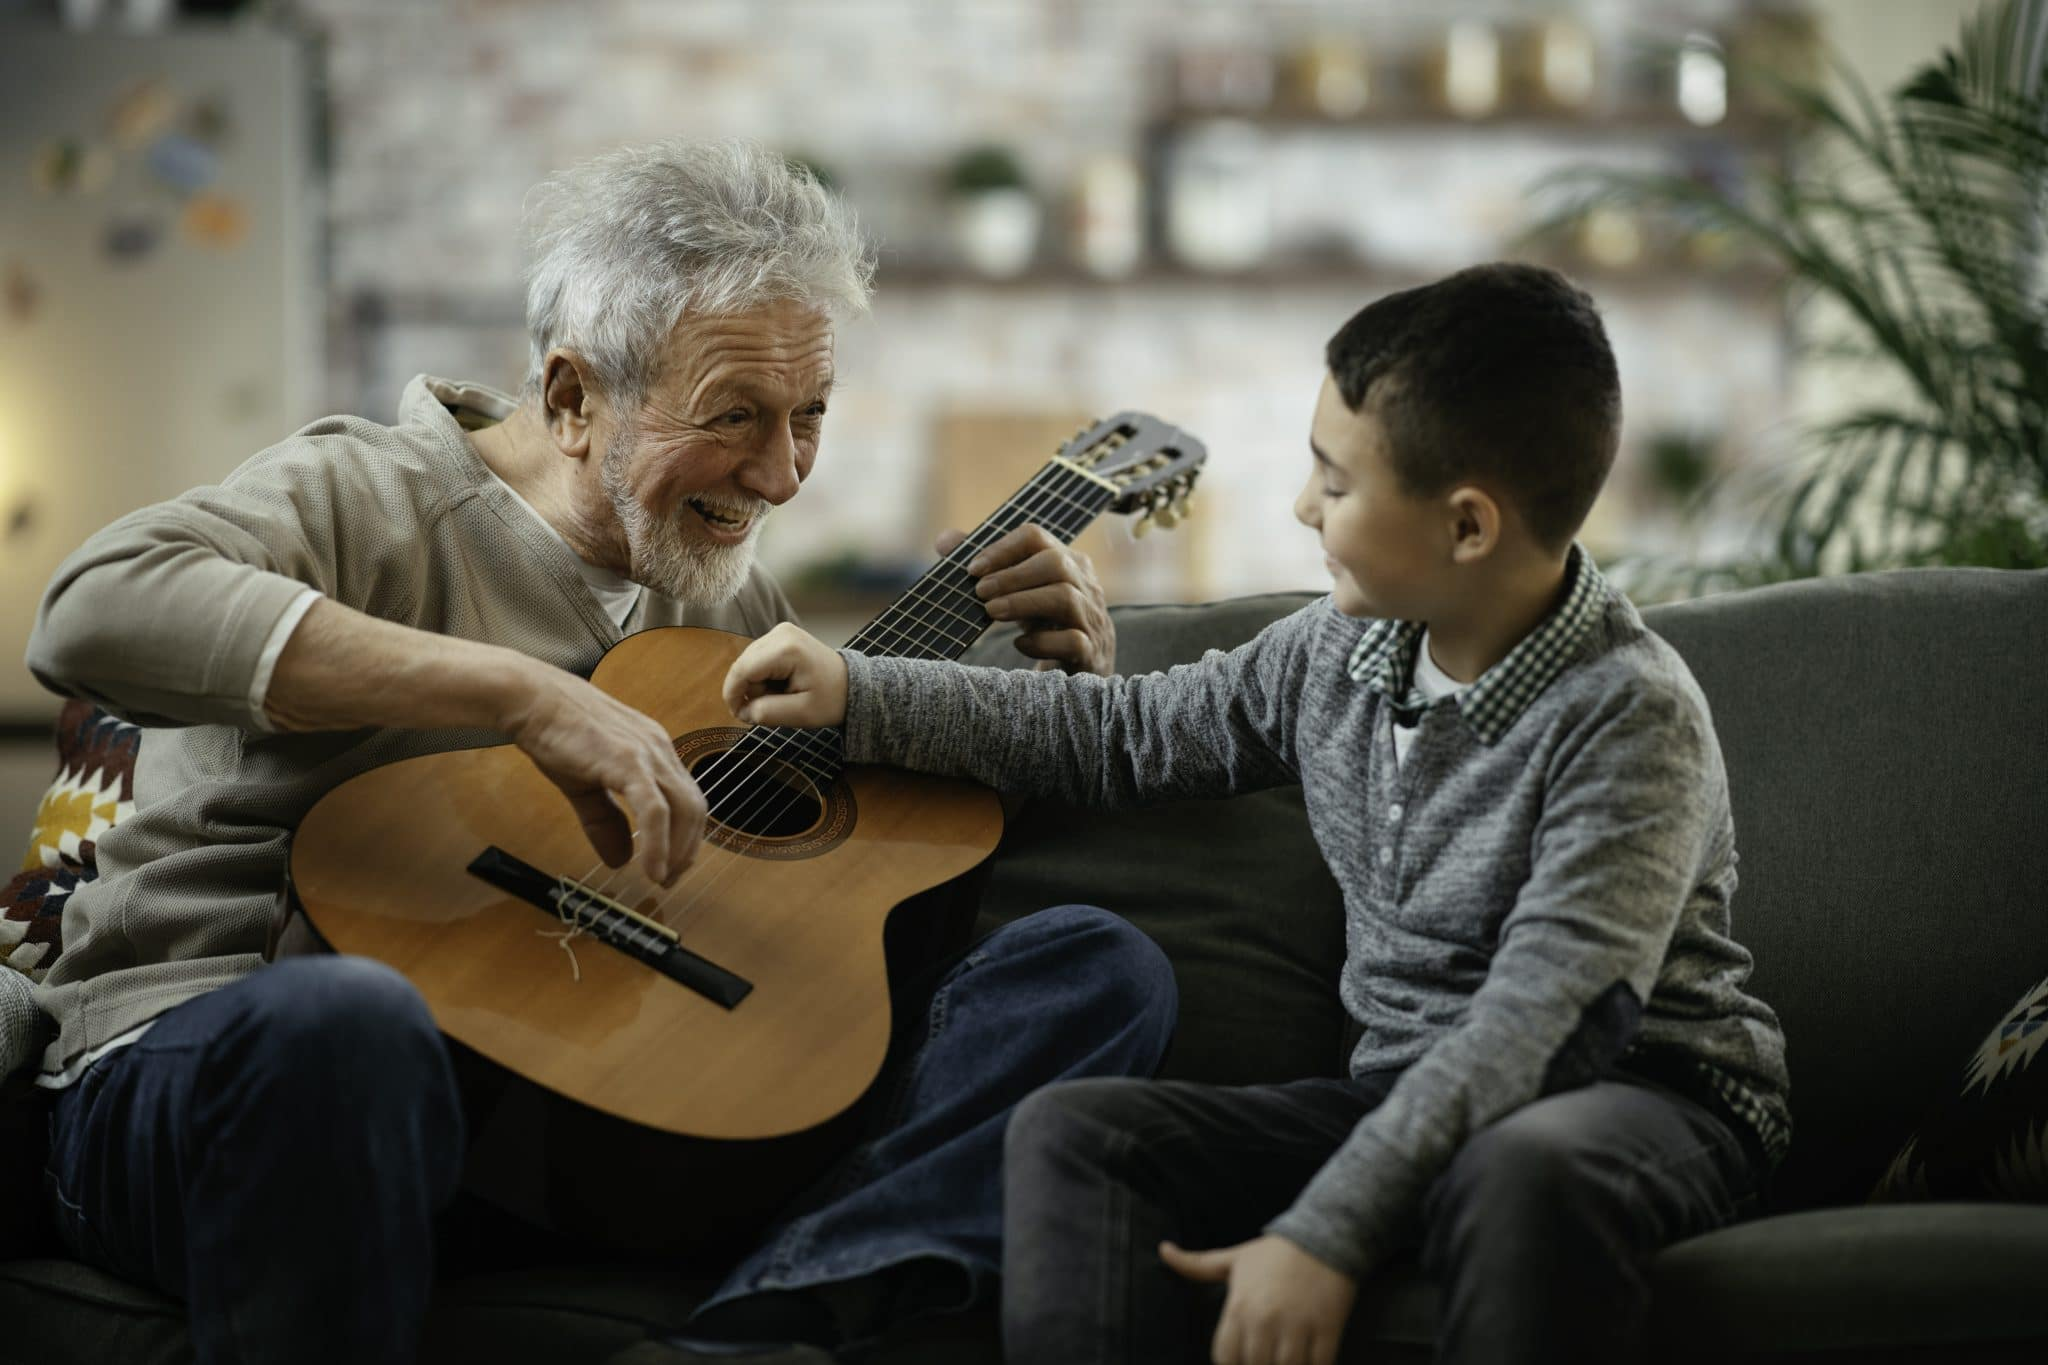 Grandpa and grandson playing guitar. Grandfather and grandson enjoying at home.